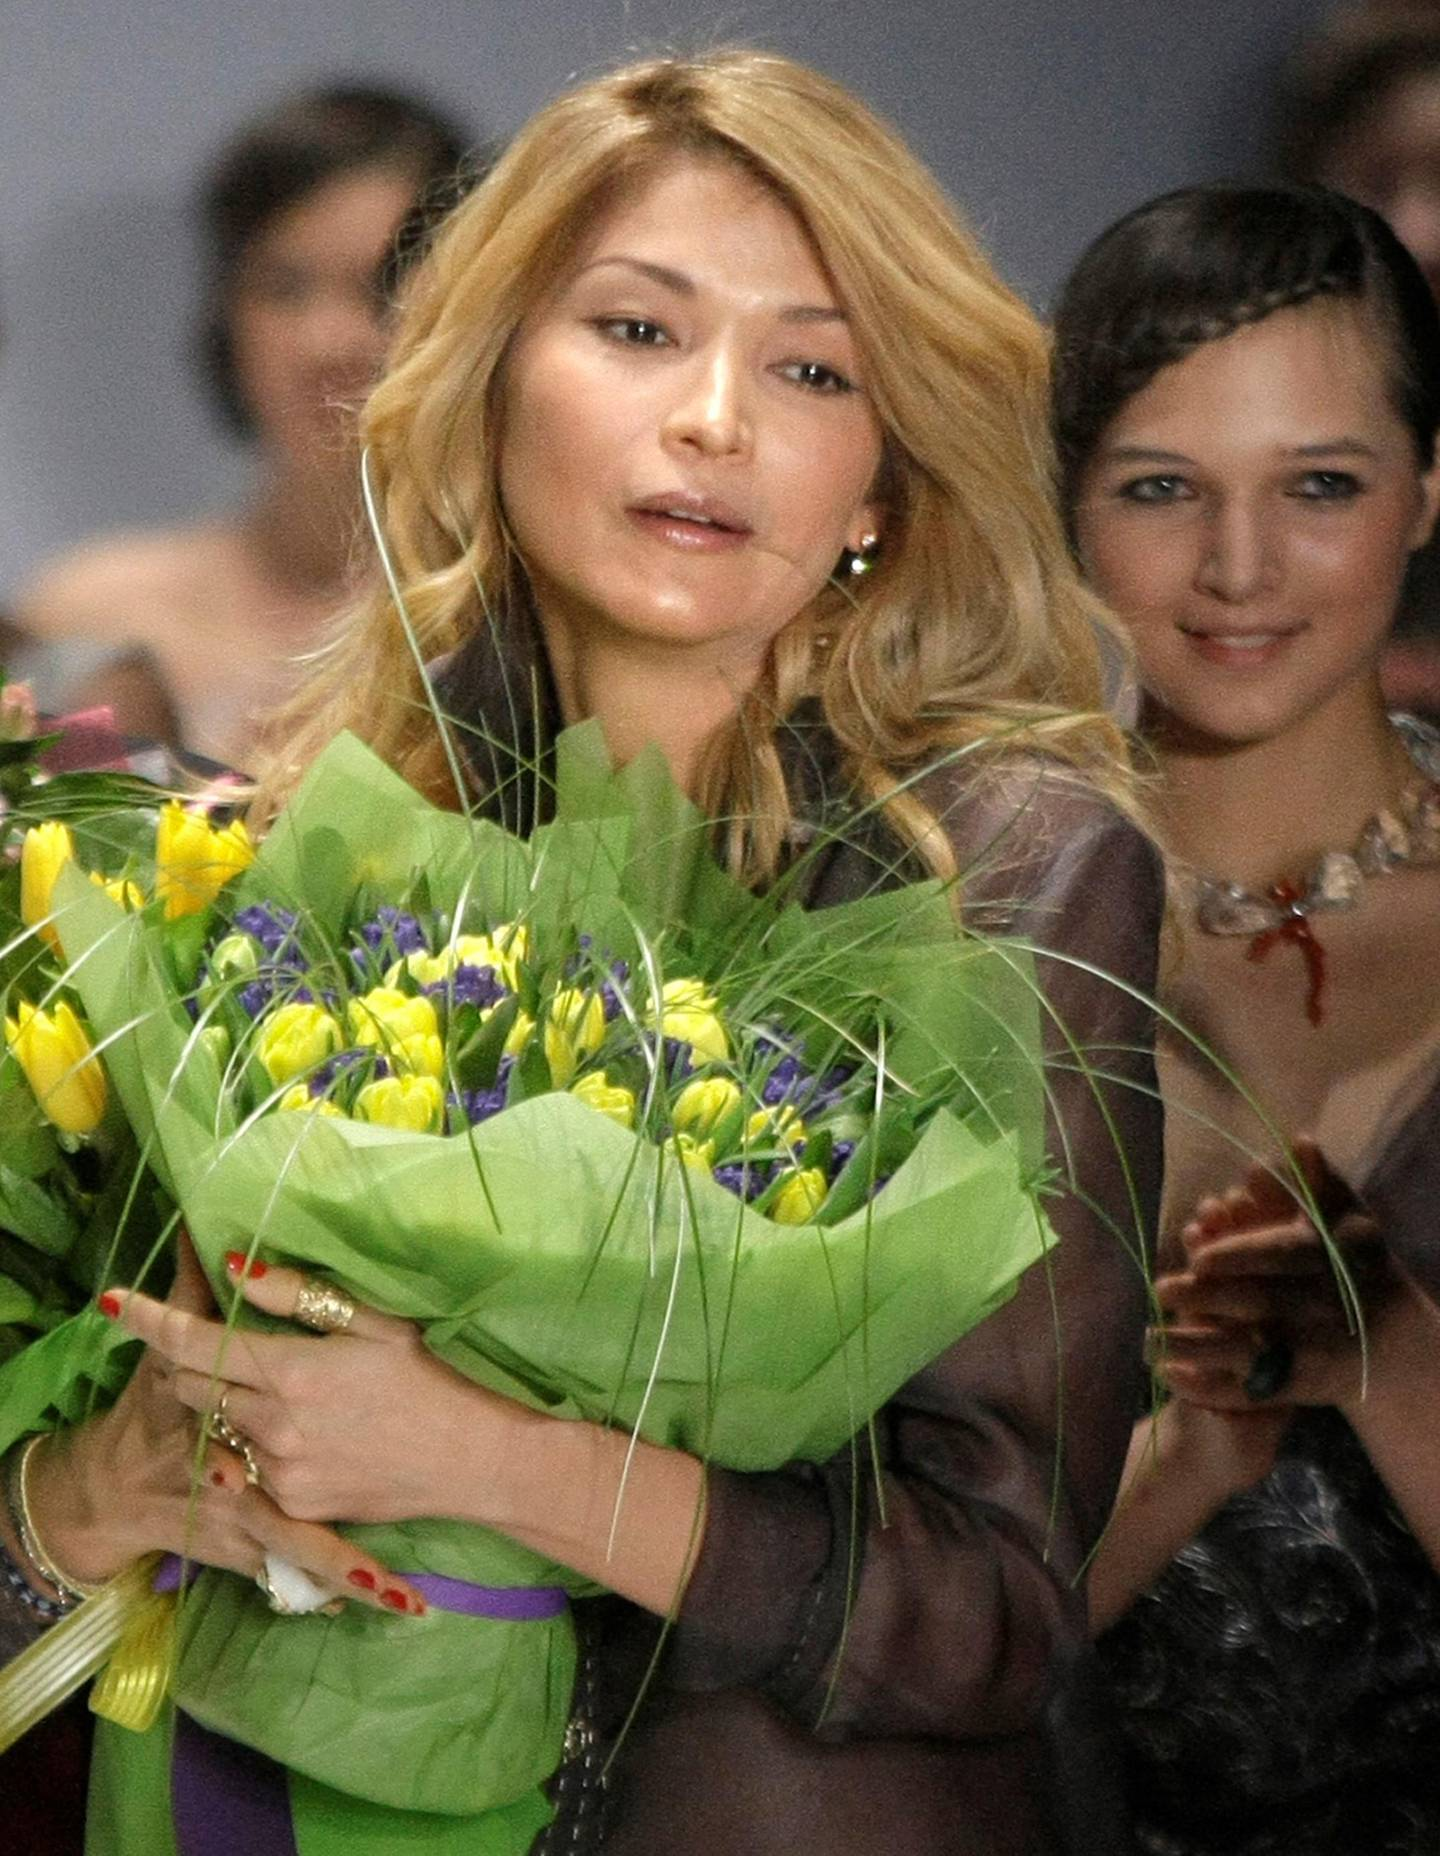 FILE - In this Saturday, April 2, 2011 file photo, Gulnara Karimova  photographed  just after a display of creations of 'Guli' collections at the Fashion Week in Moscow, Russia. Swiss authorities have opened a money laundering investigation into the eldest daughter of Uzbekistan's authoritarian president, Islam Karimov, related to that country?s telecommunications market, Switzerland?s attorney general?s office said Wednesday March 12, 2014. The investigation into Gulnara Karimova, a glamorous and wealthy diplomat, pop singer and businesswoman, also has triggered new leads abroad, particularly in Sweden and France, the prosecutors? office in the Swiss capital Bern said in a statement.  (AP Photo/Mikhail Metzel, file)